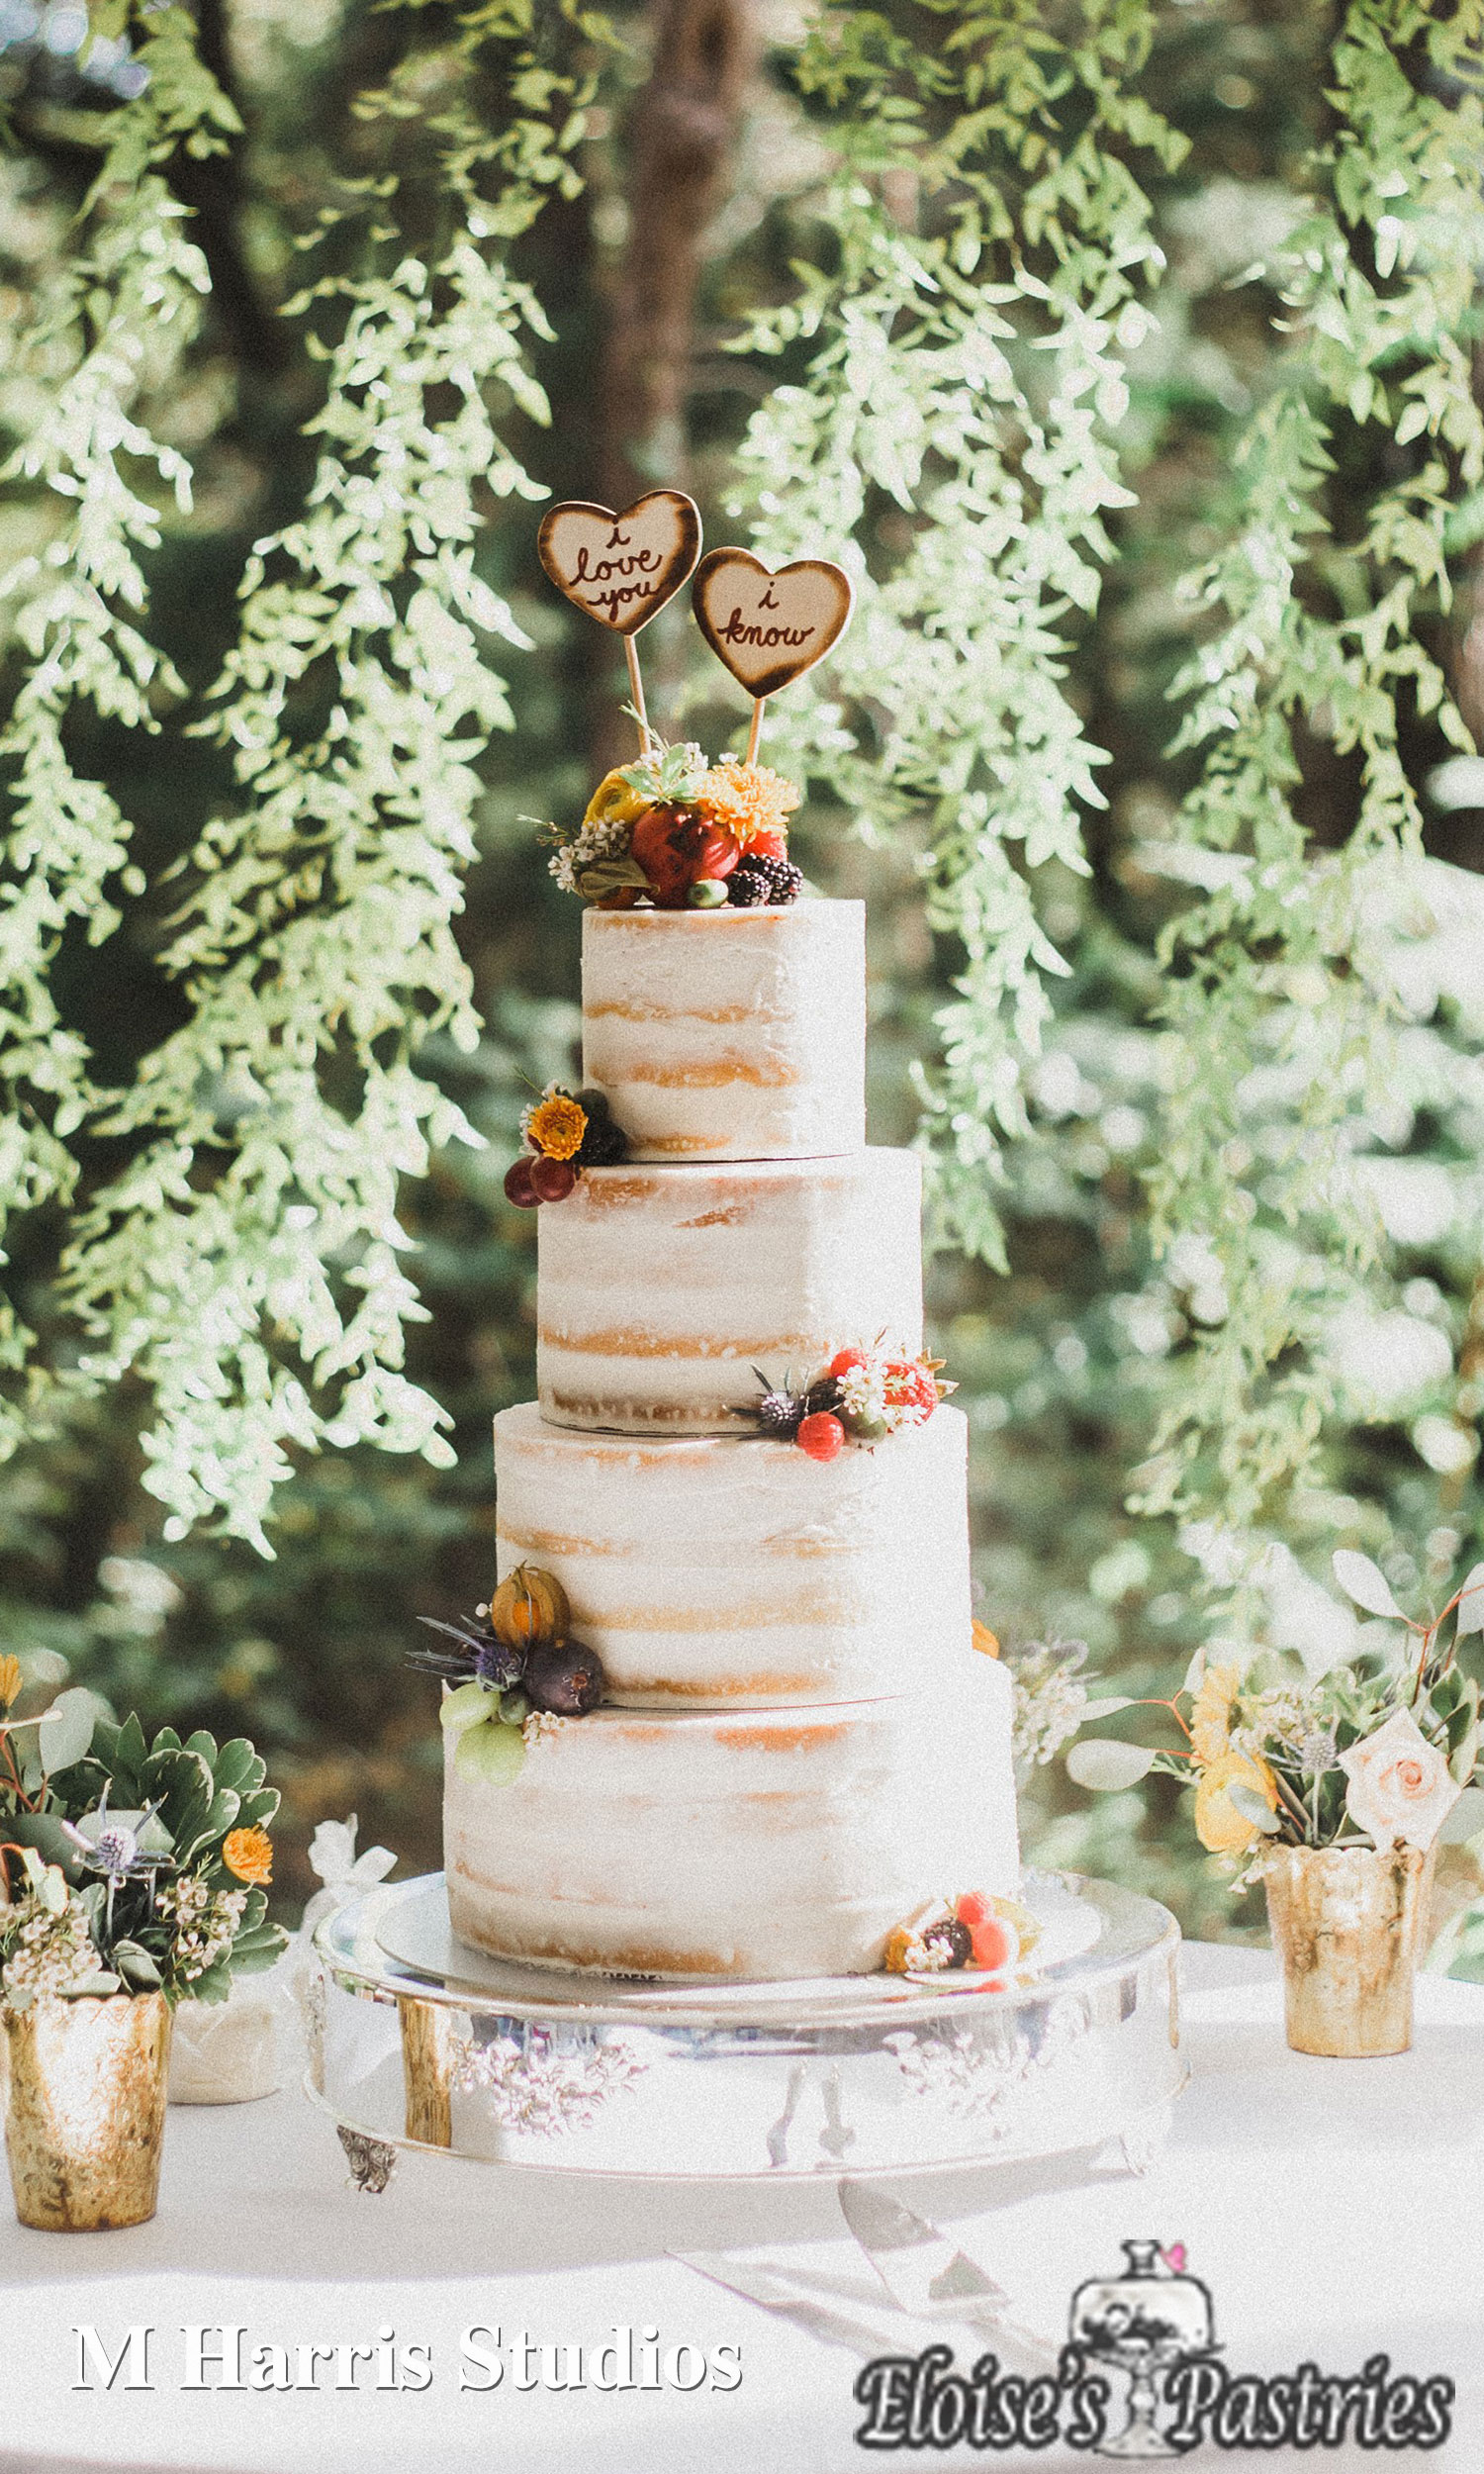 Summer Naked Cake with Berries and Flowers